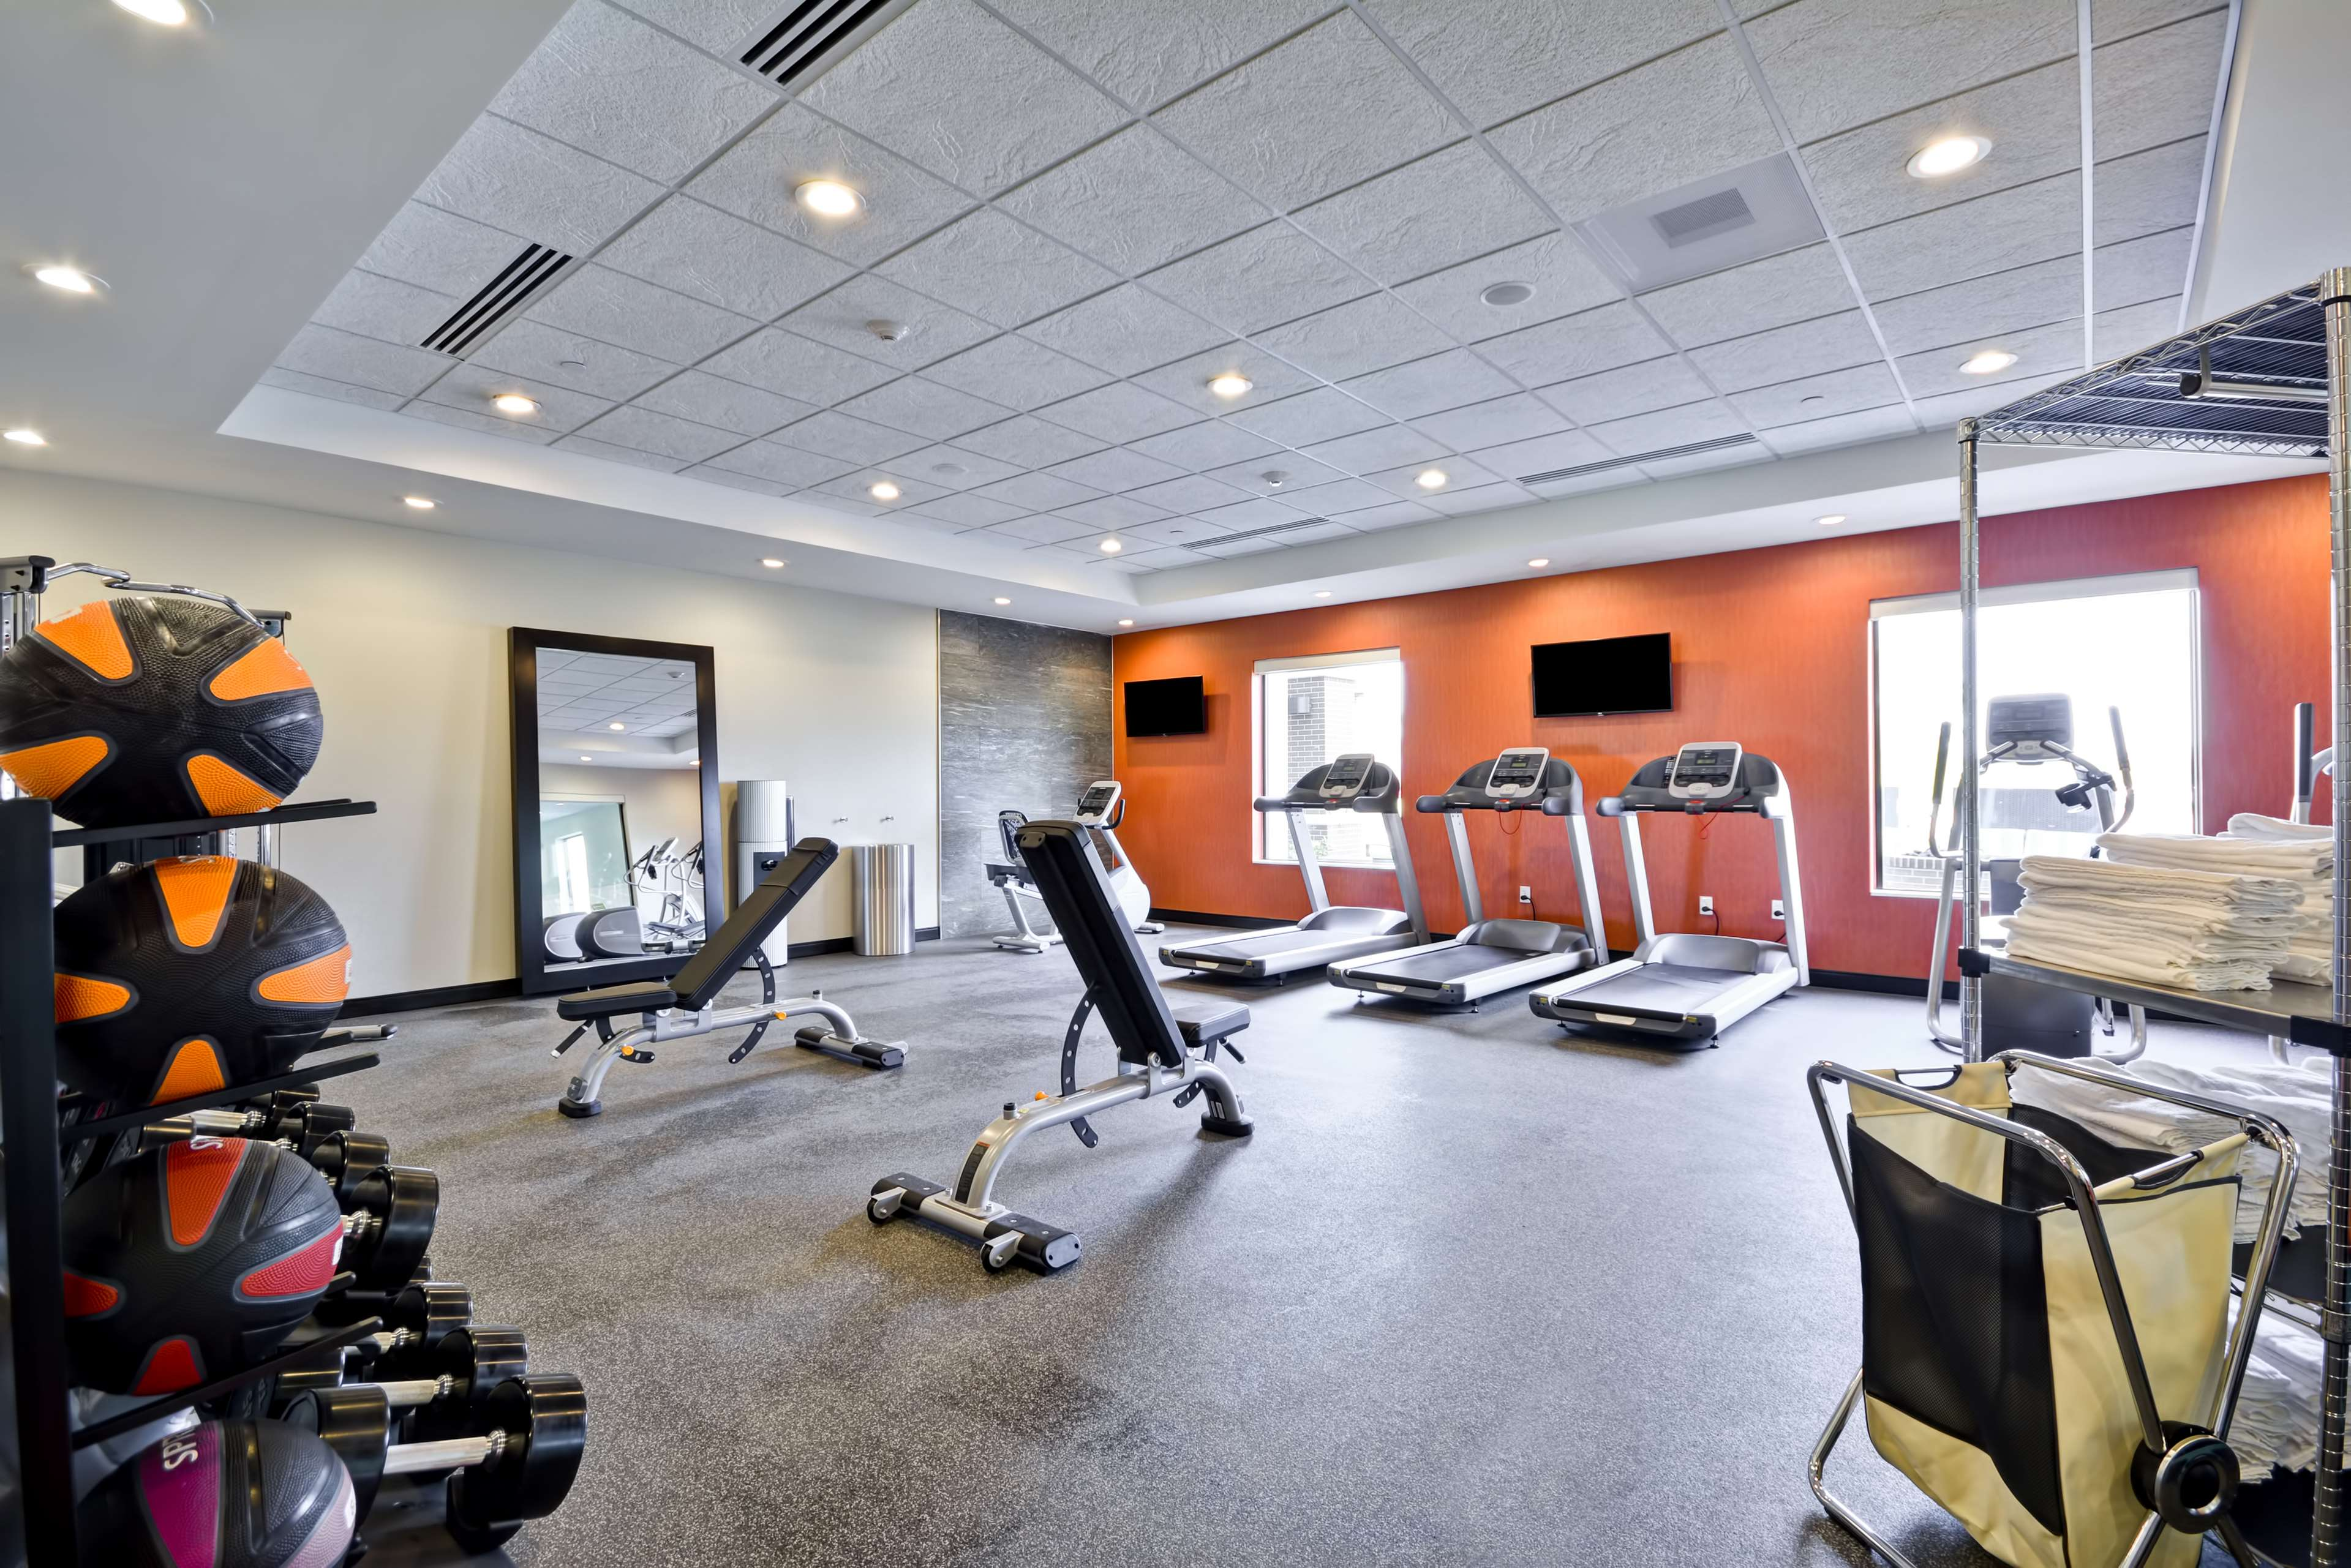 Home2 Suites By Hilton Evansville image 3